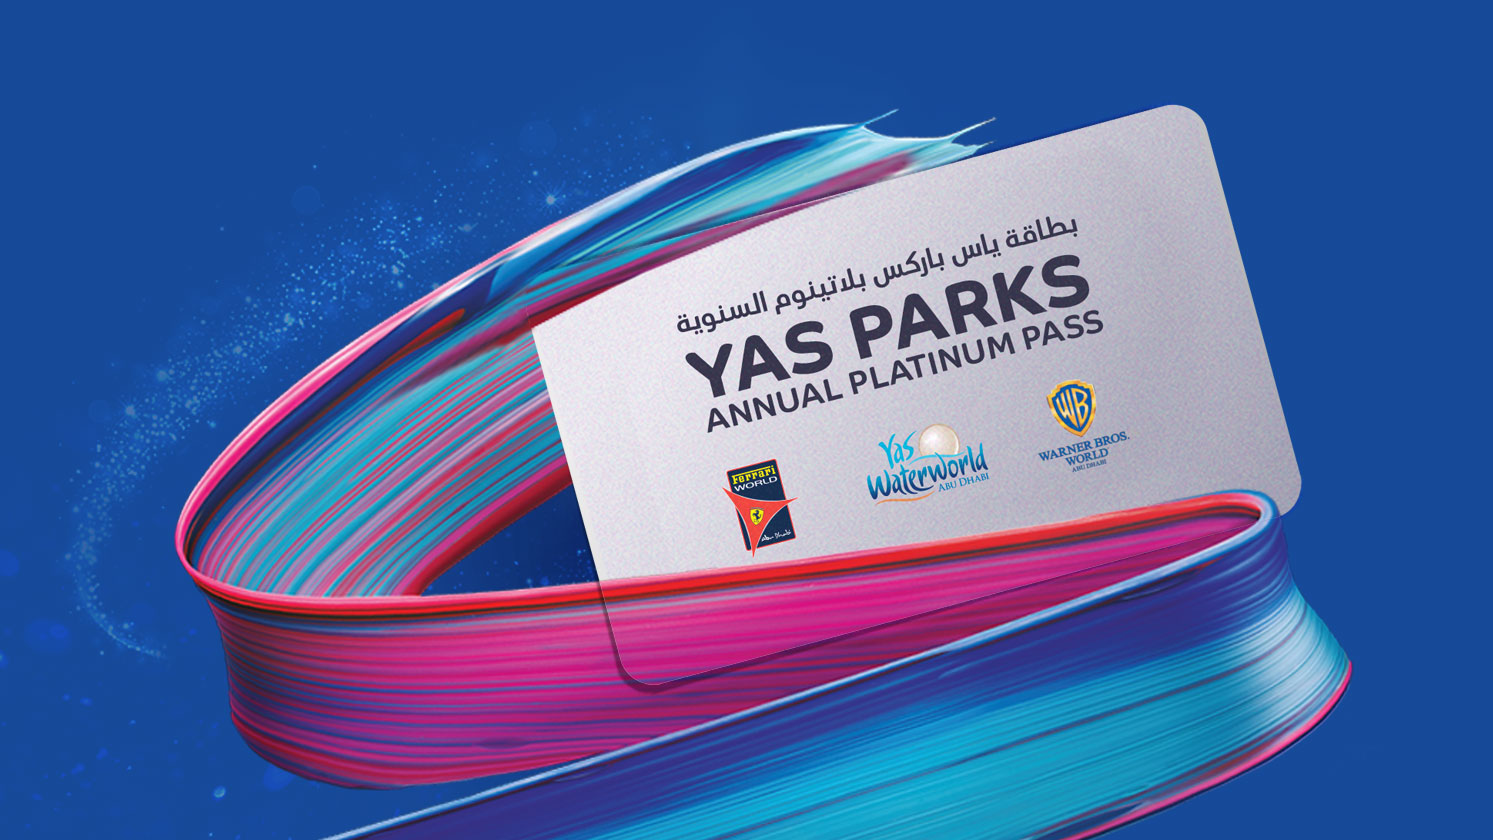 Warner Bros. World™ Abu Dhabi - Yas Parks Annual Platinum Pass